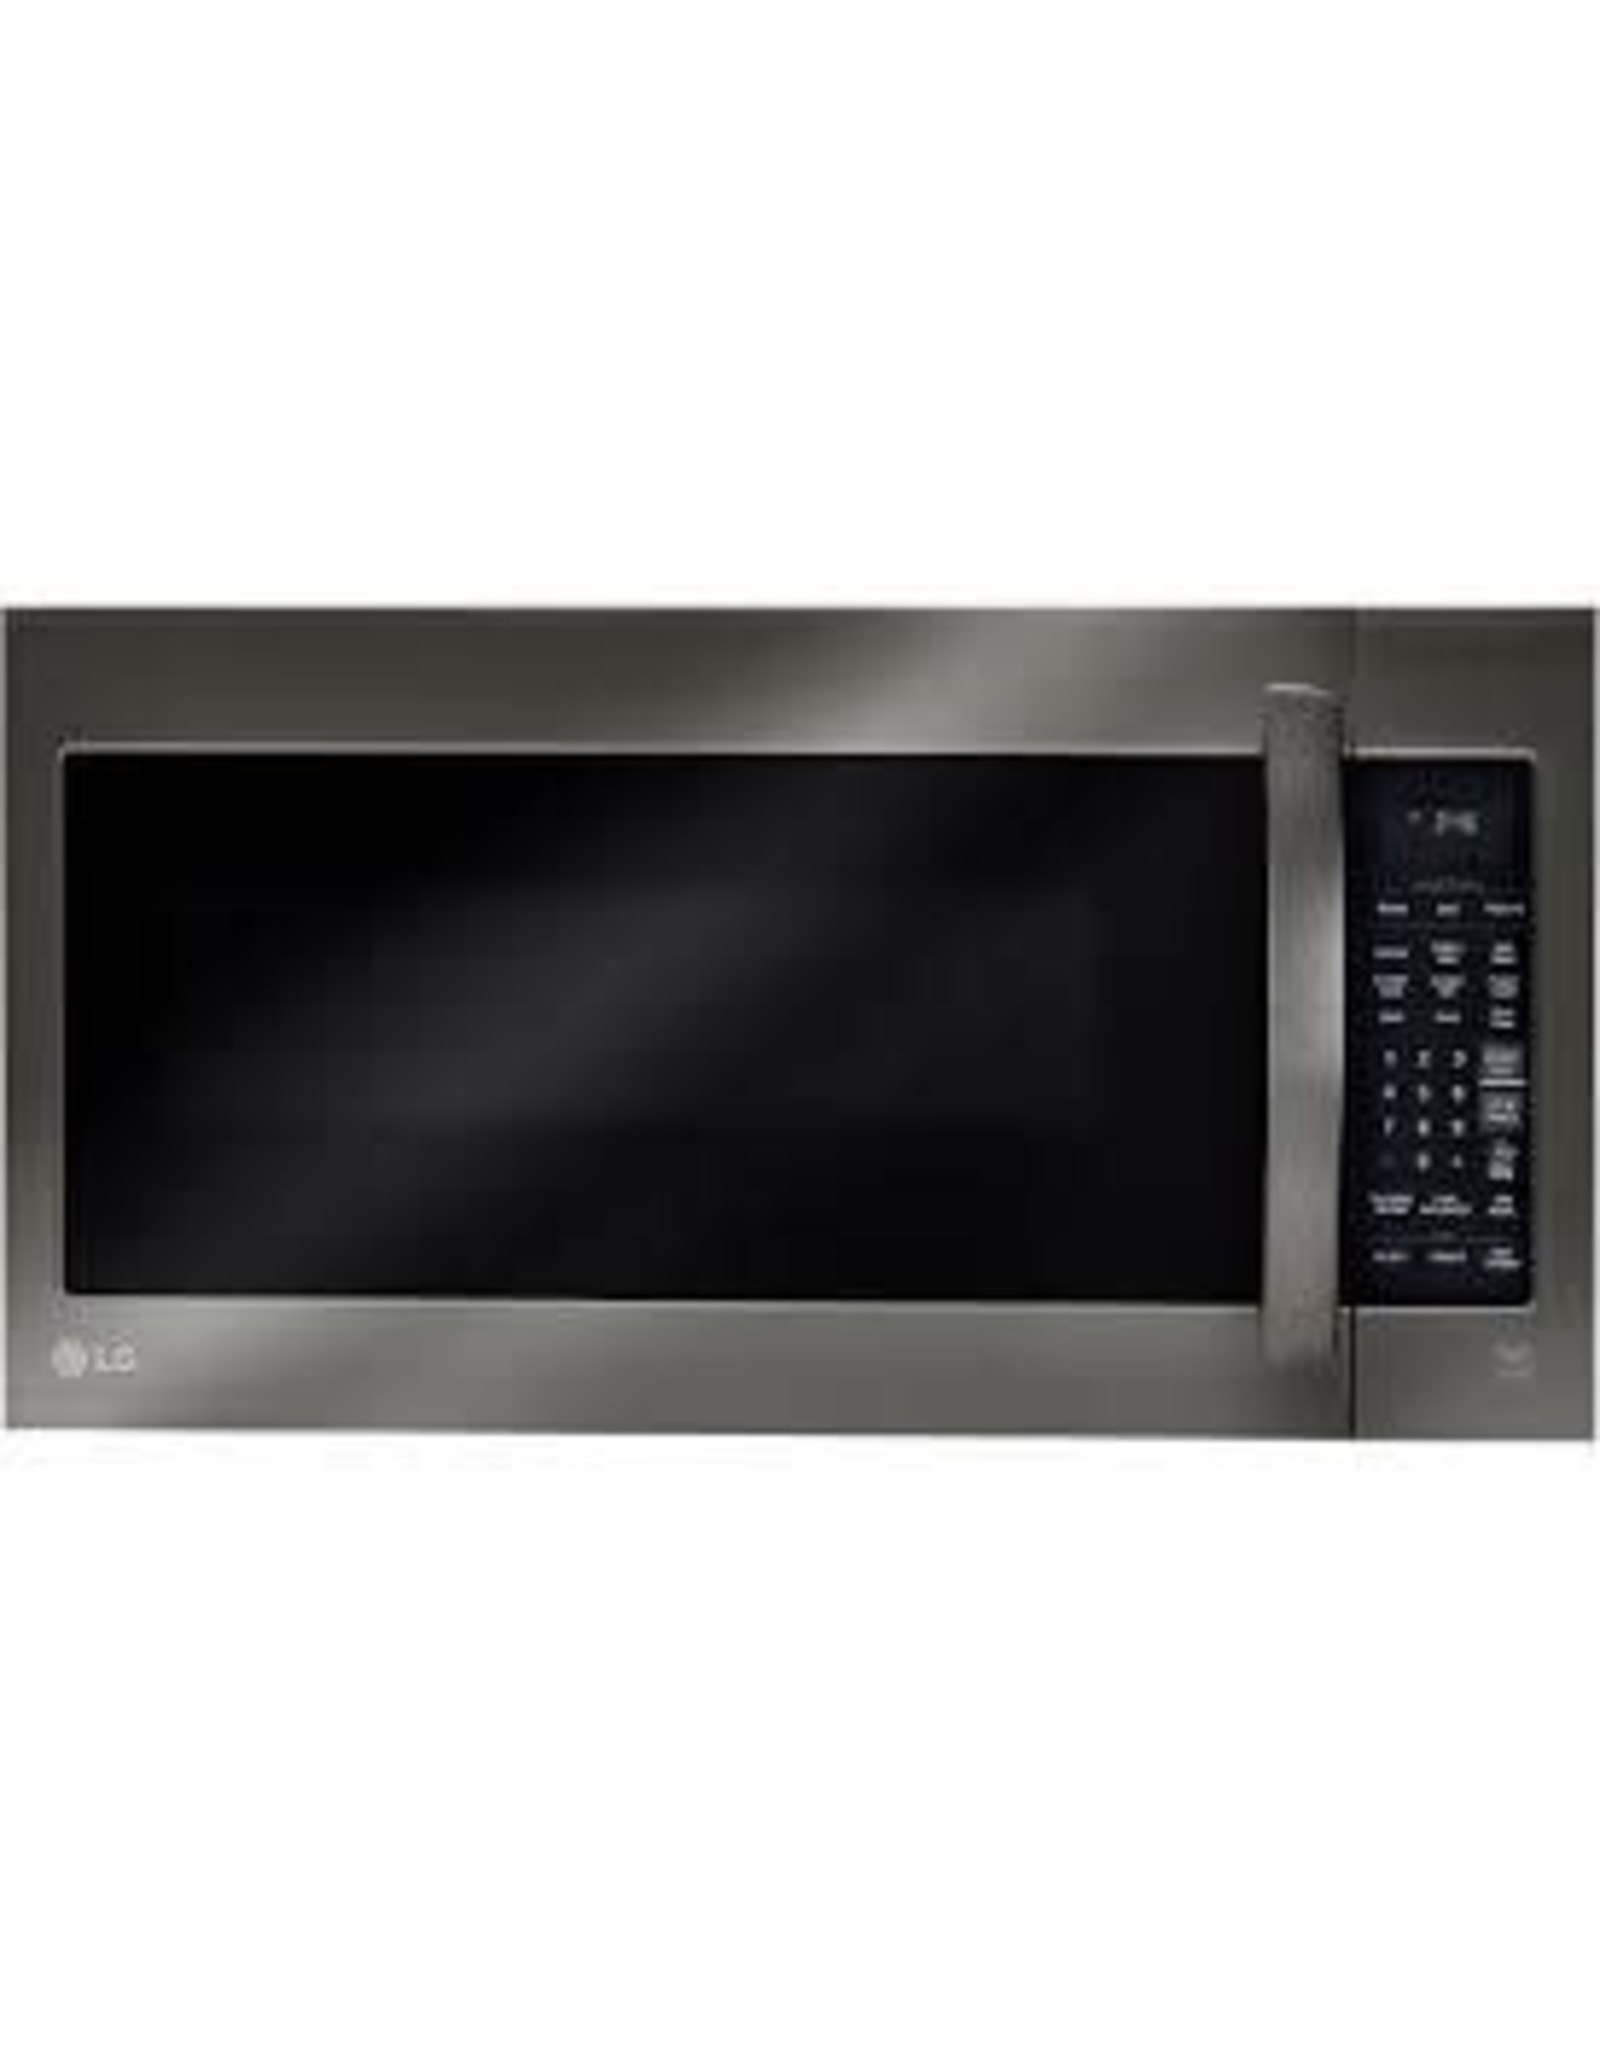 LG Electronics 2.0 cu. ft. Over the Range Microwave in Black Stainless Steel with EasyClean and Sensor Cook